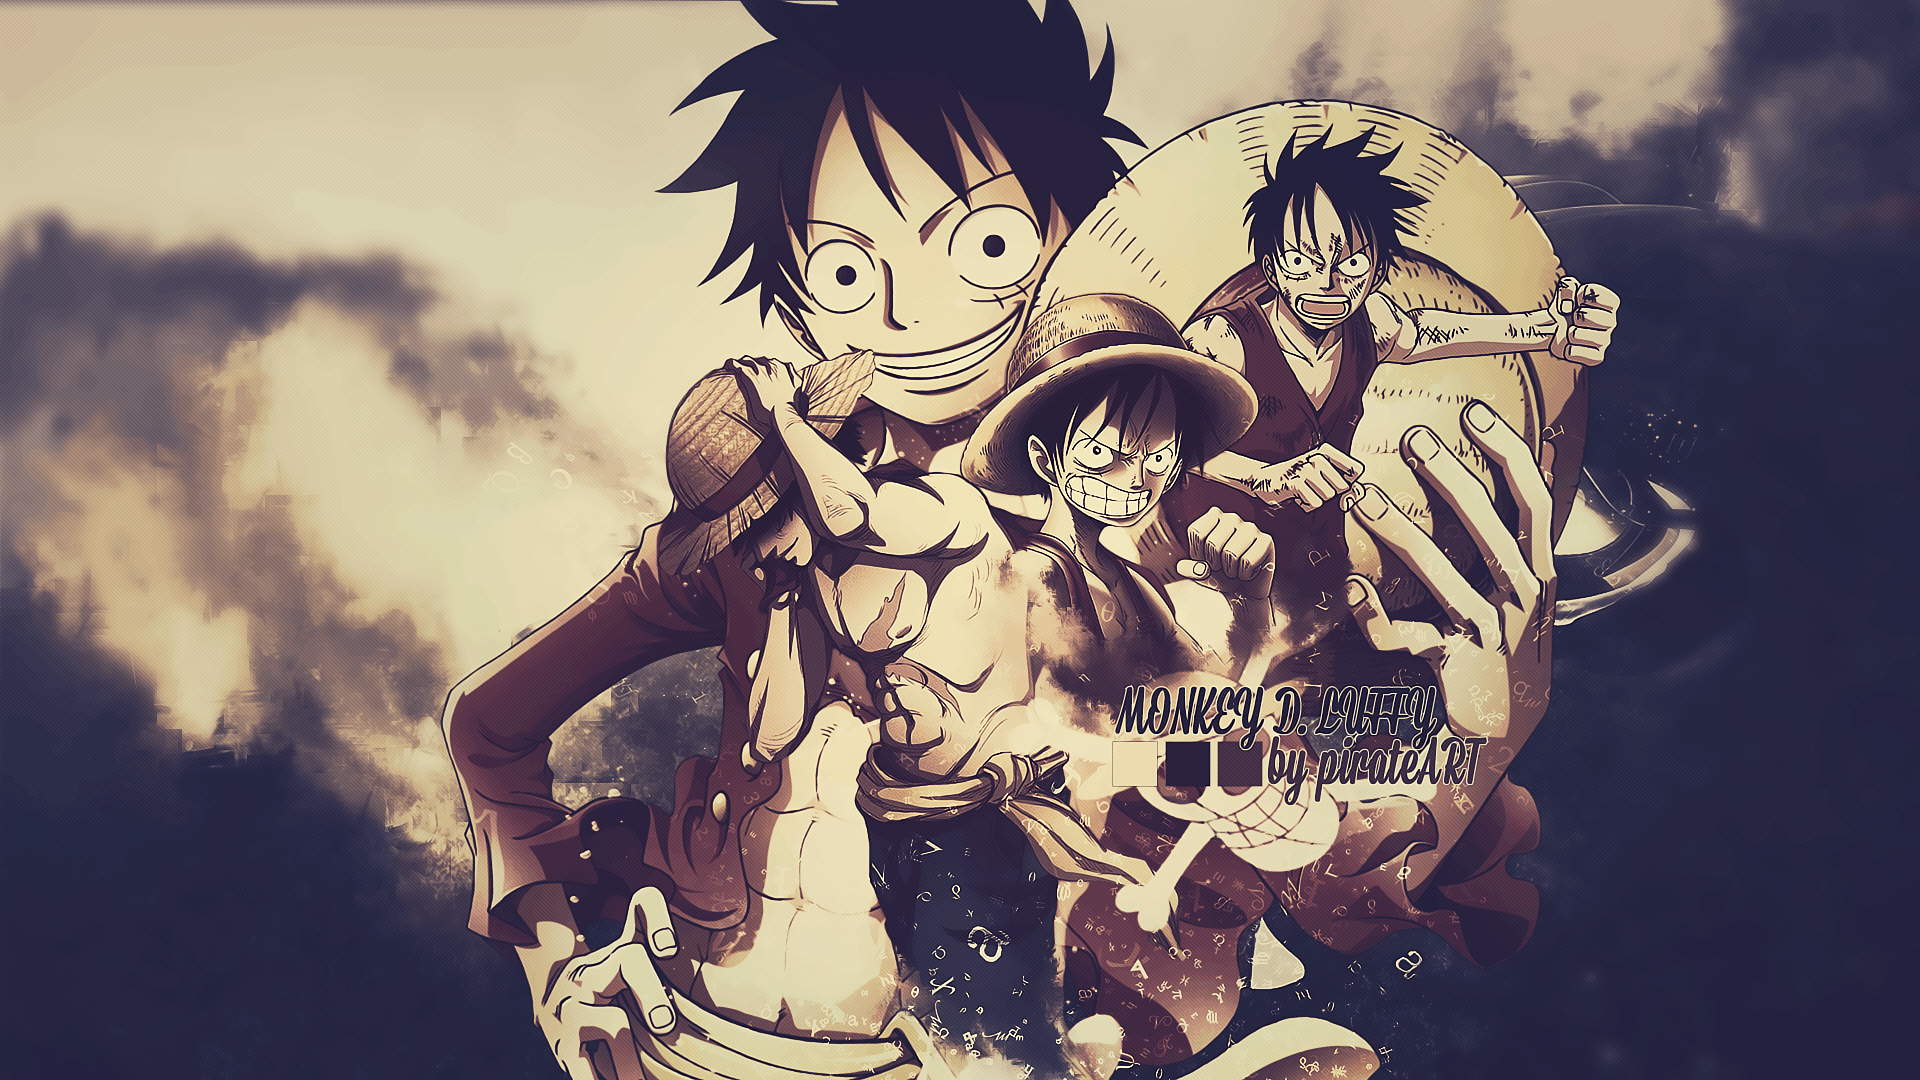 ace and luffy fighting wallpaper - photo #30